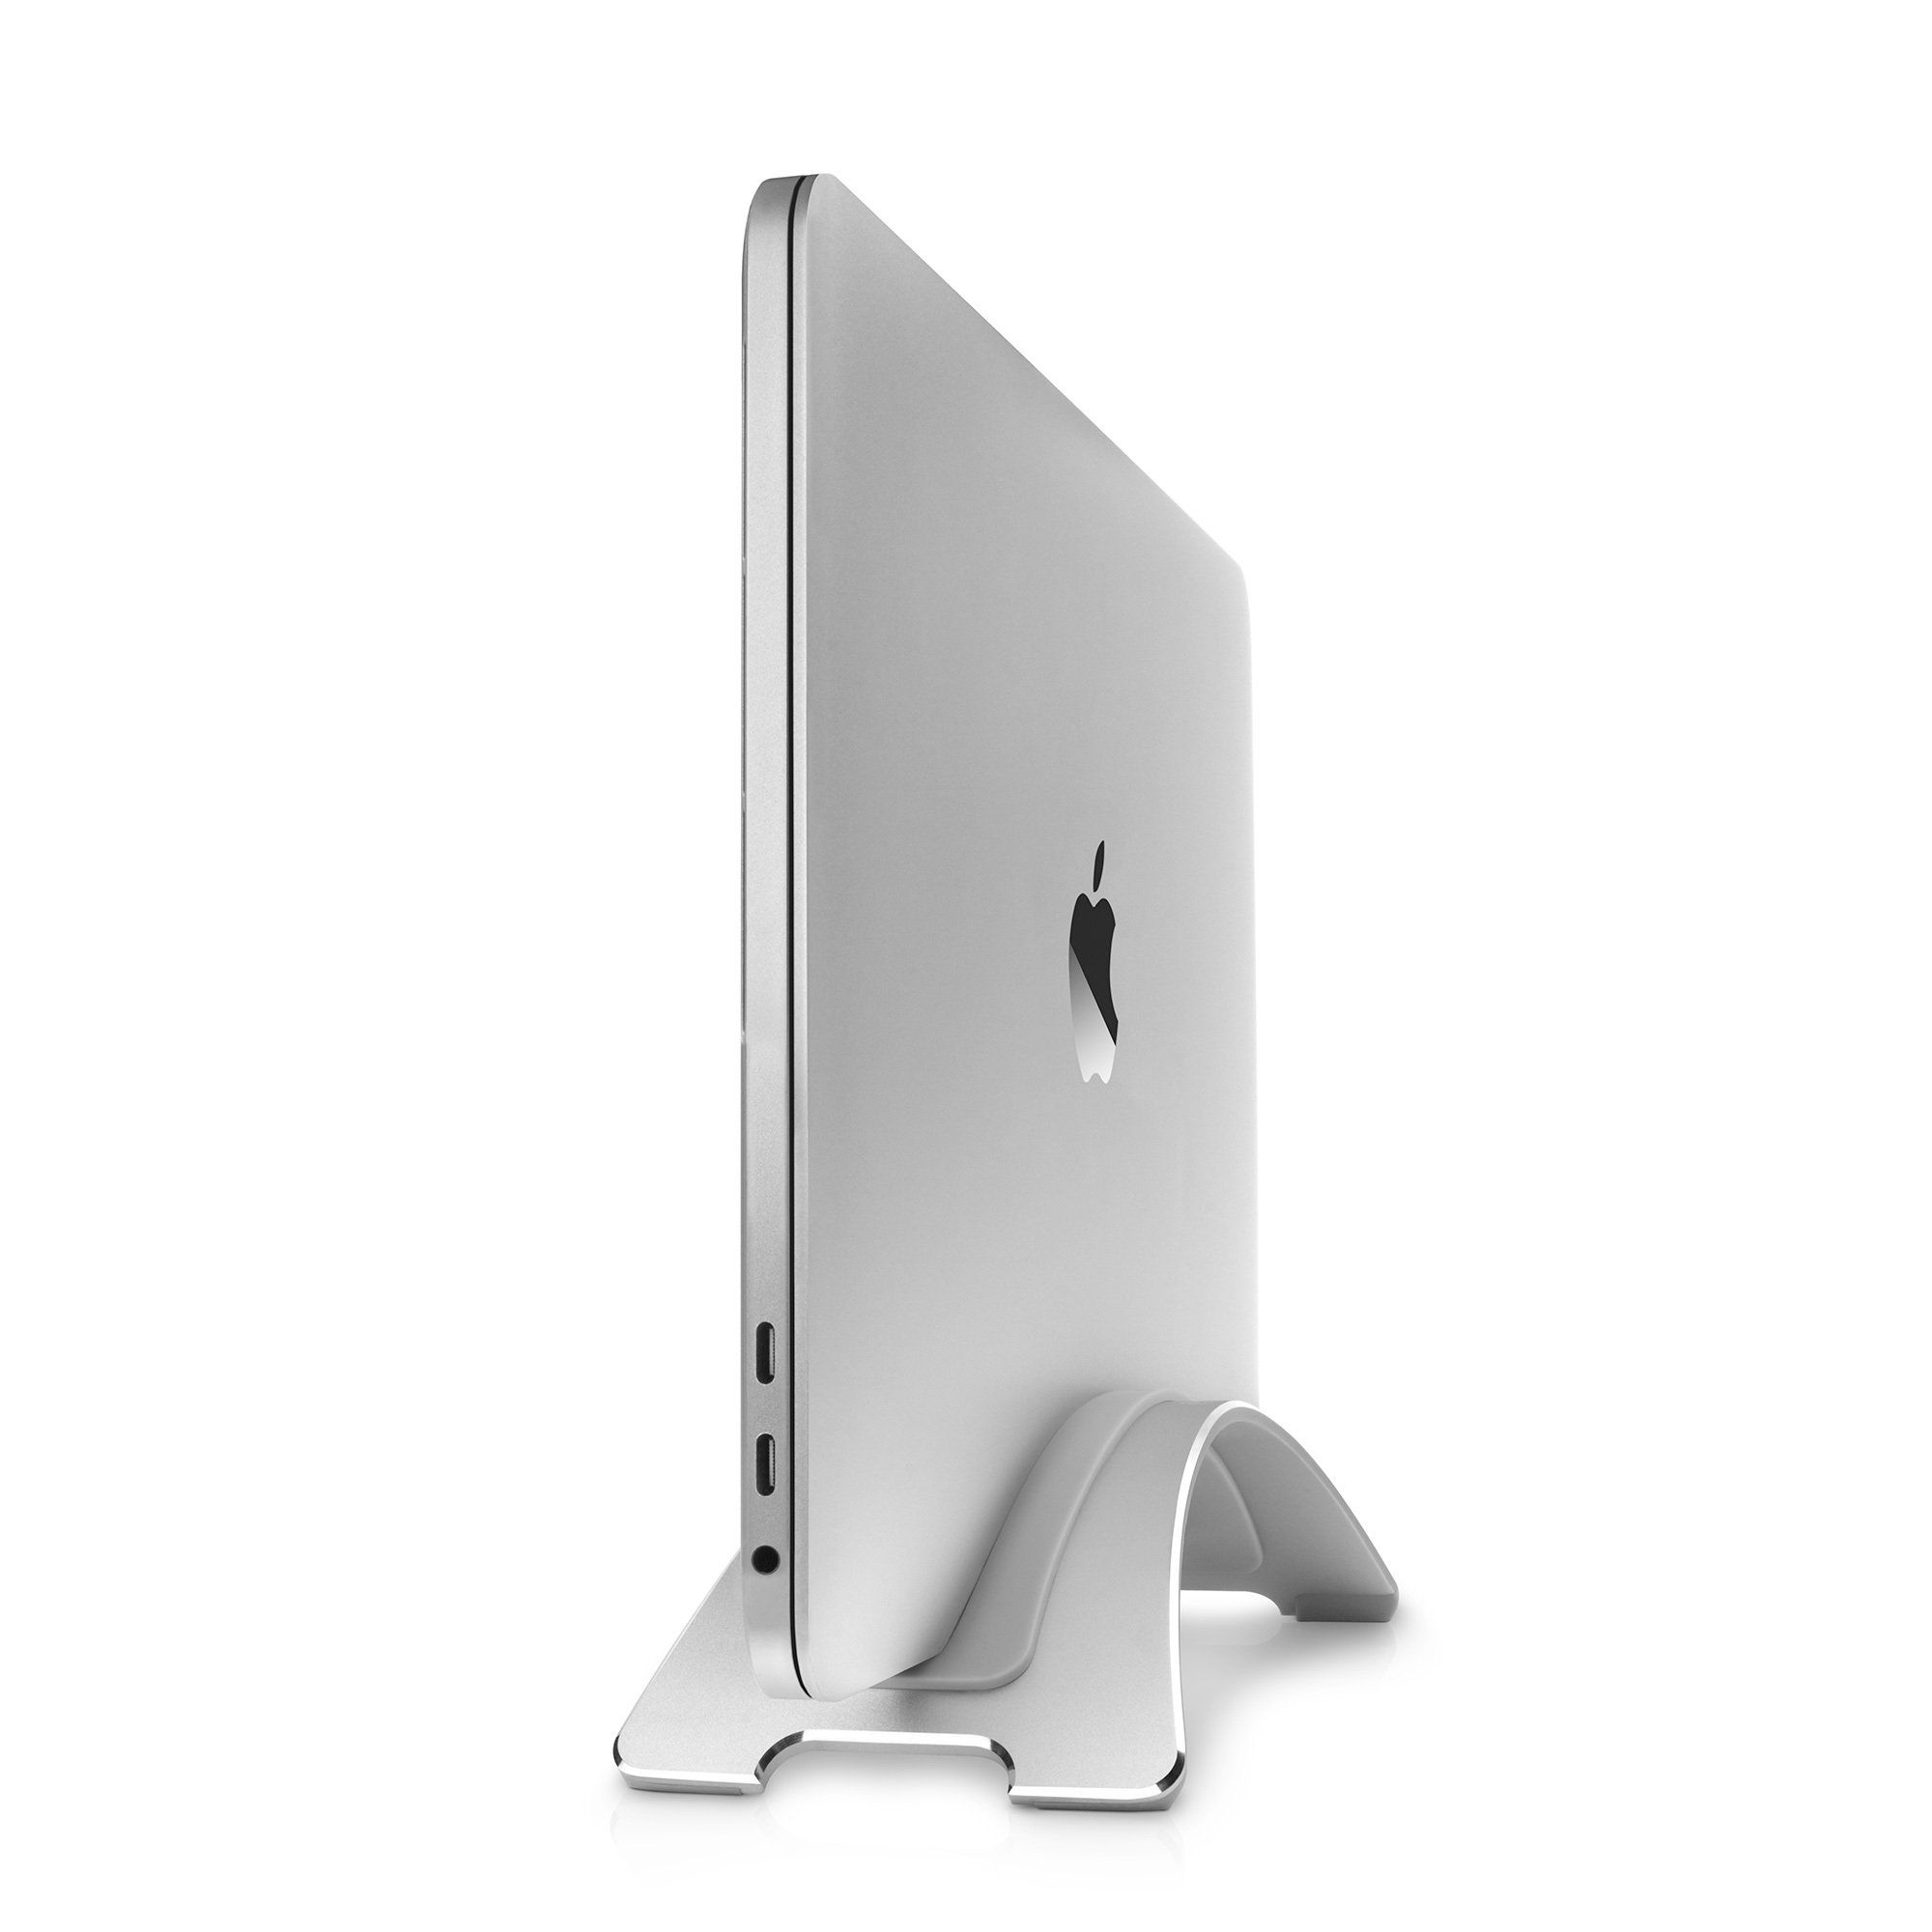 BookArc Insert for 16-inch MacBook Pro & MacBook Air with Retina Display 2020 (F)